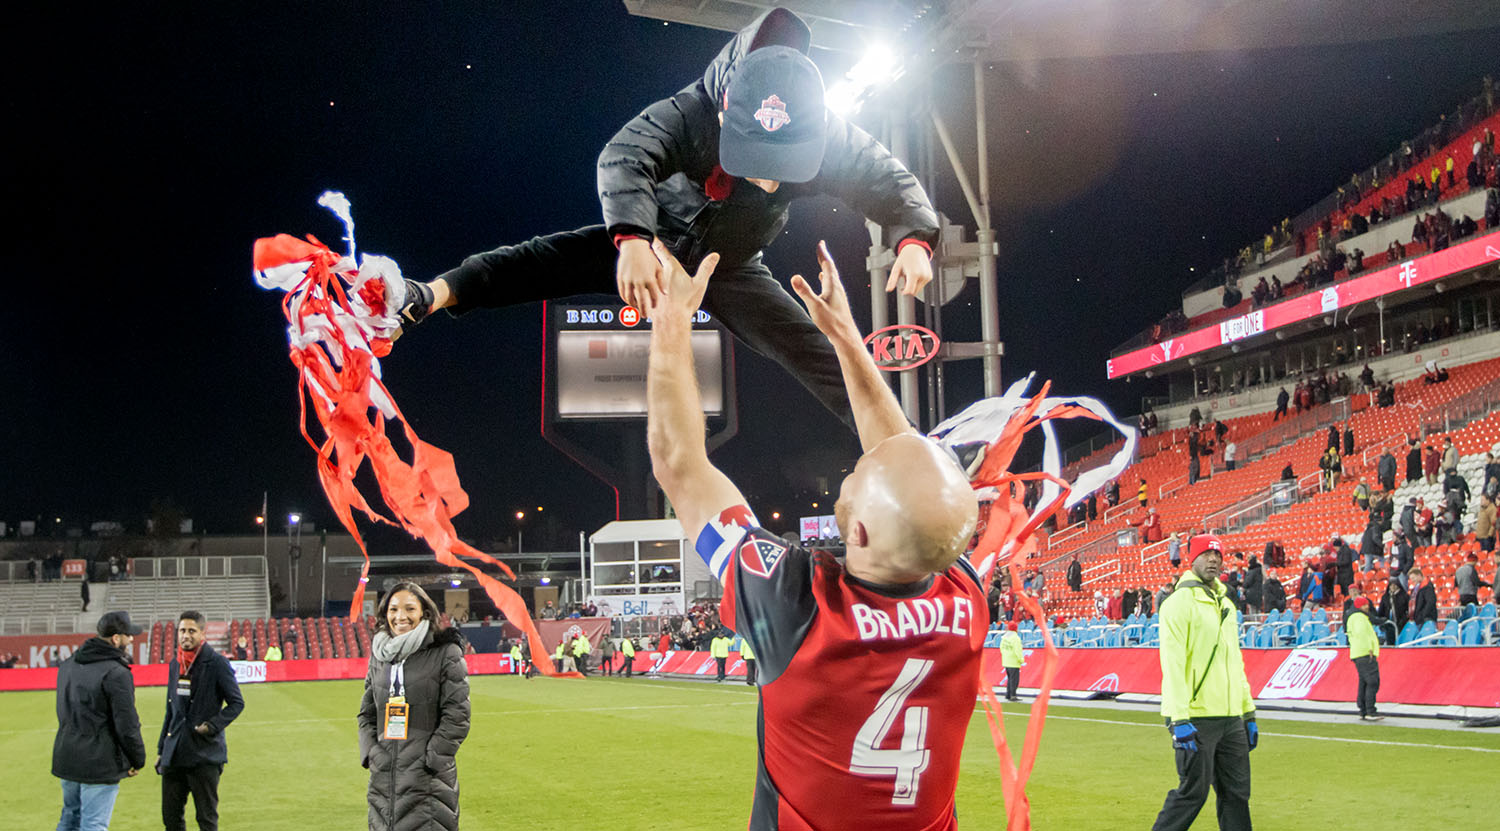 Michael Bradley throwing his son into the air as streamers thrown during the match stick to his feet in celebration of the 2017 Eastern Confernce Final win in 2017. Image by Dennis Marciniak of denMAR Media.